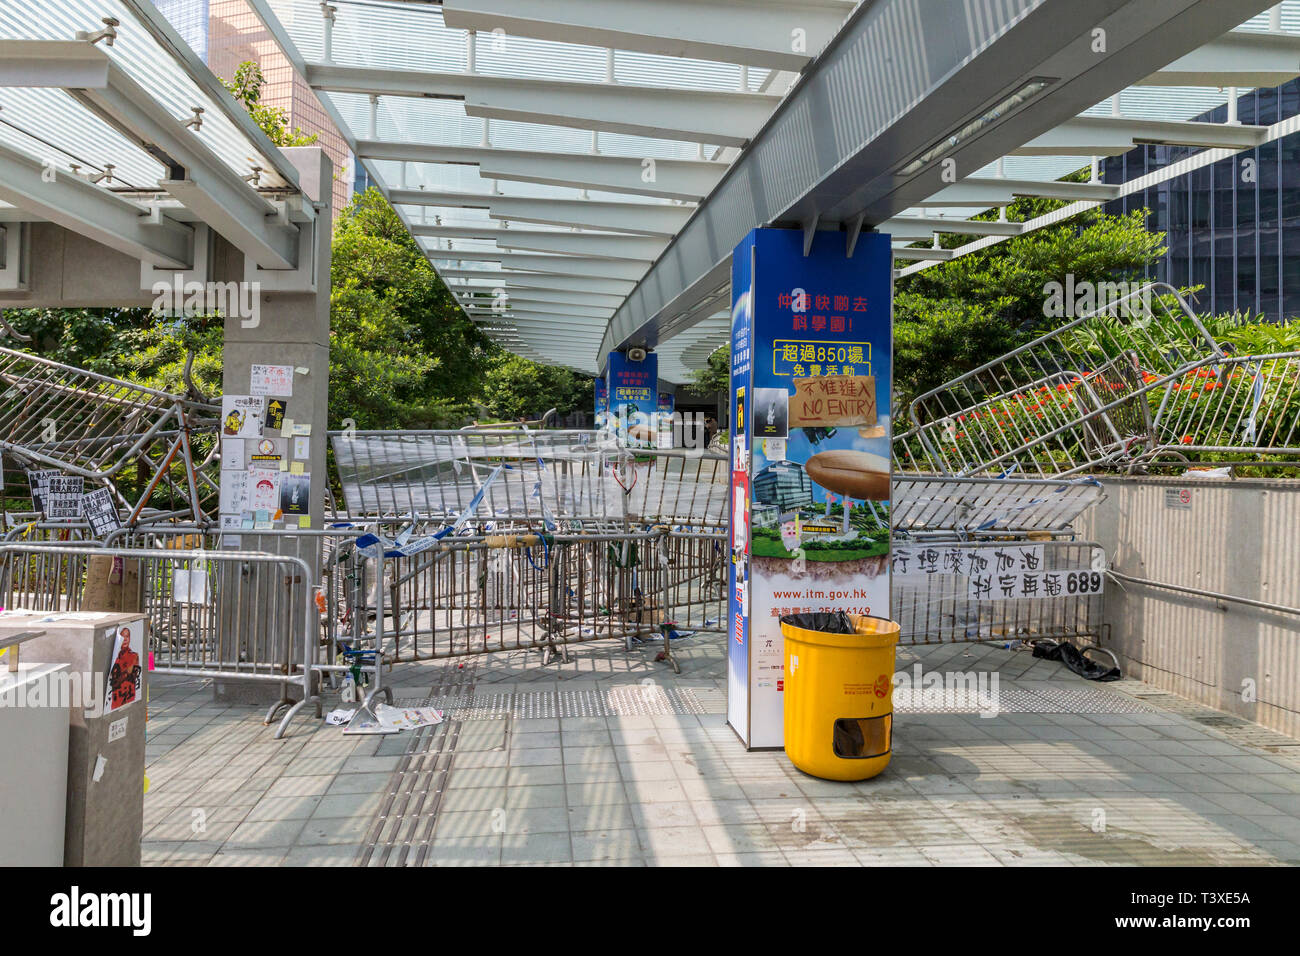 Hong Kong Yellow Umbrella protests saw main roads blockaded against traffic closing off whole sections of the Central business districts. - Stock Image